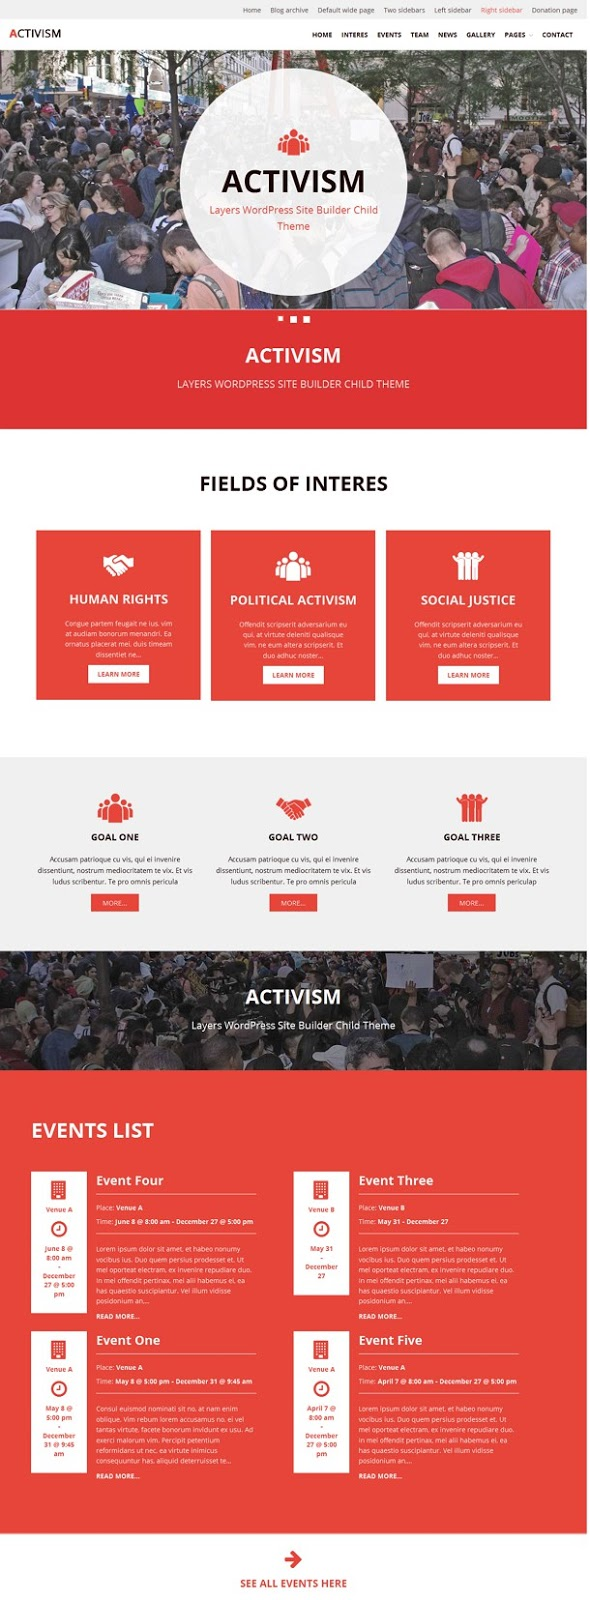 Activism - LayersWP WordPress Child Theme